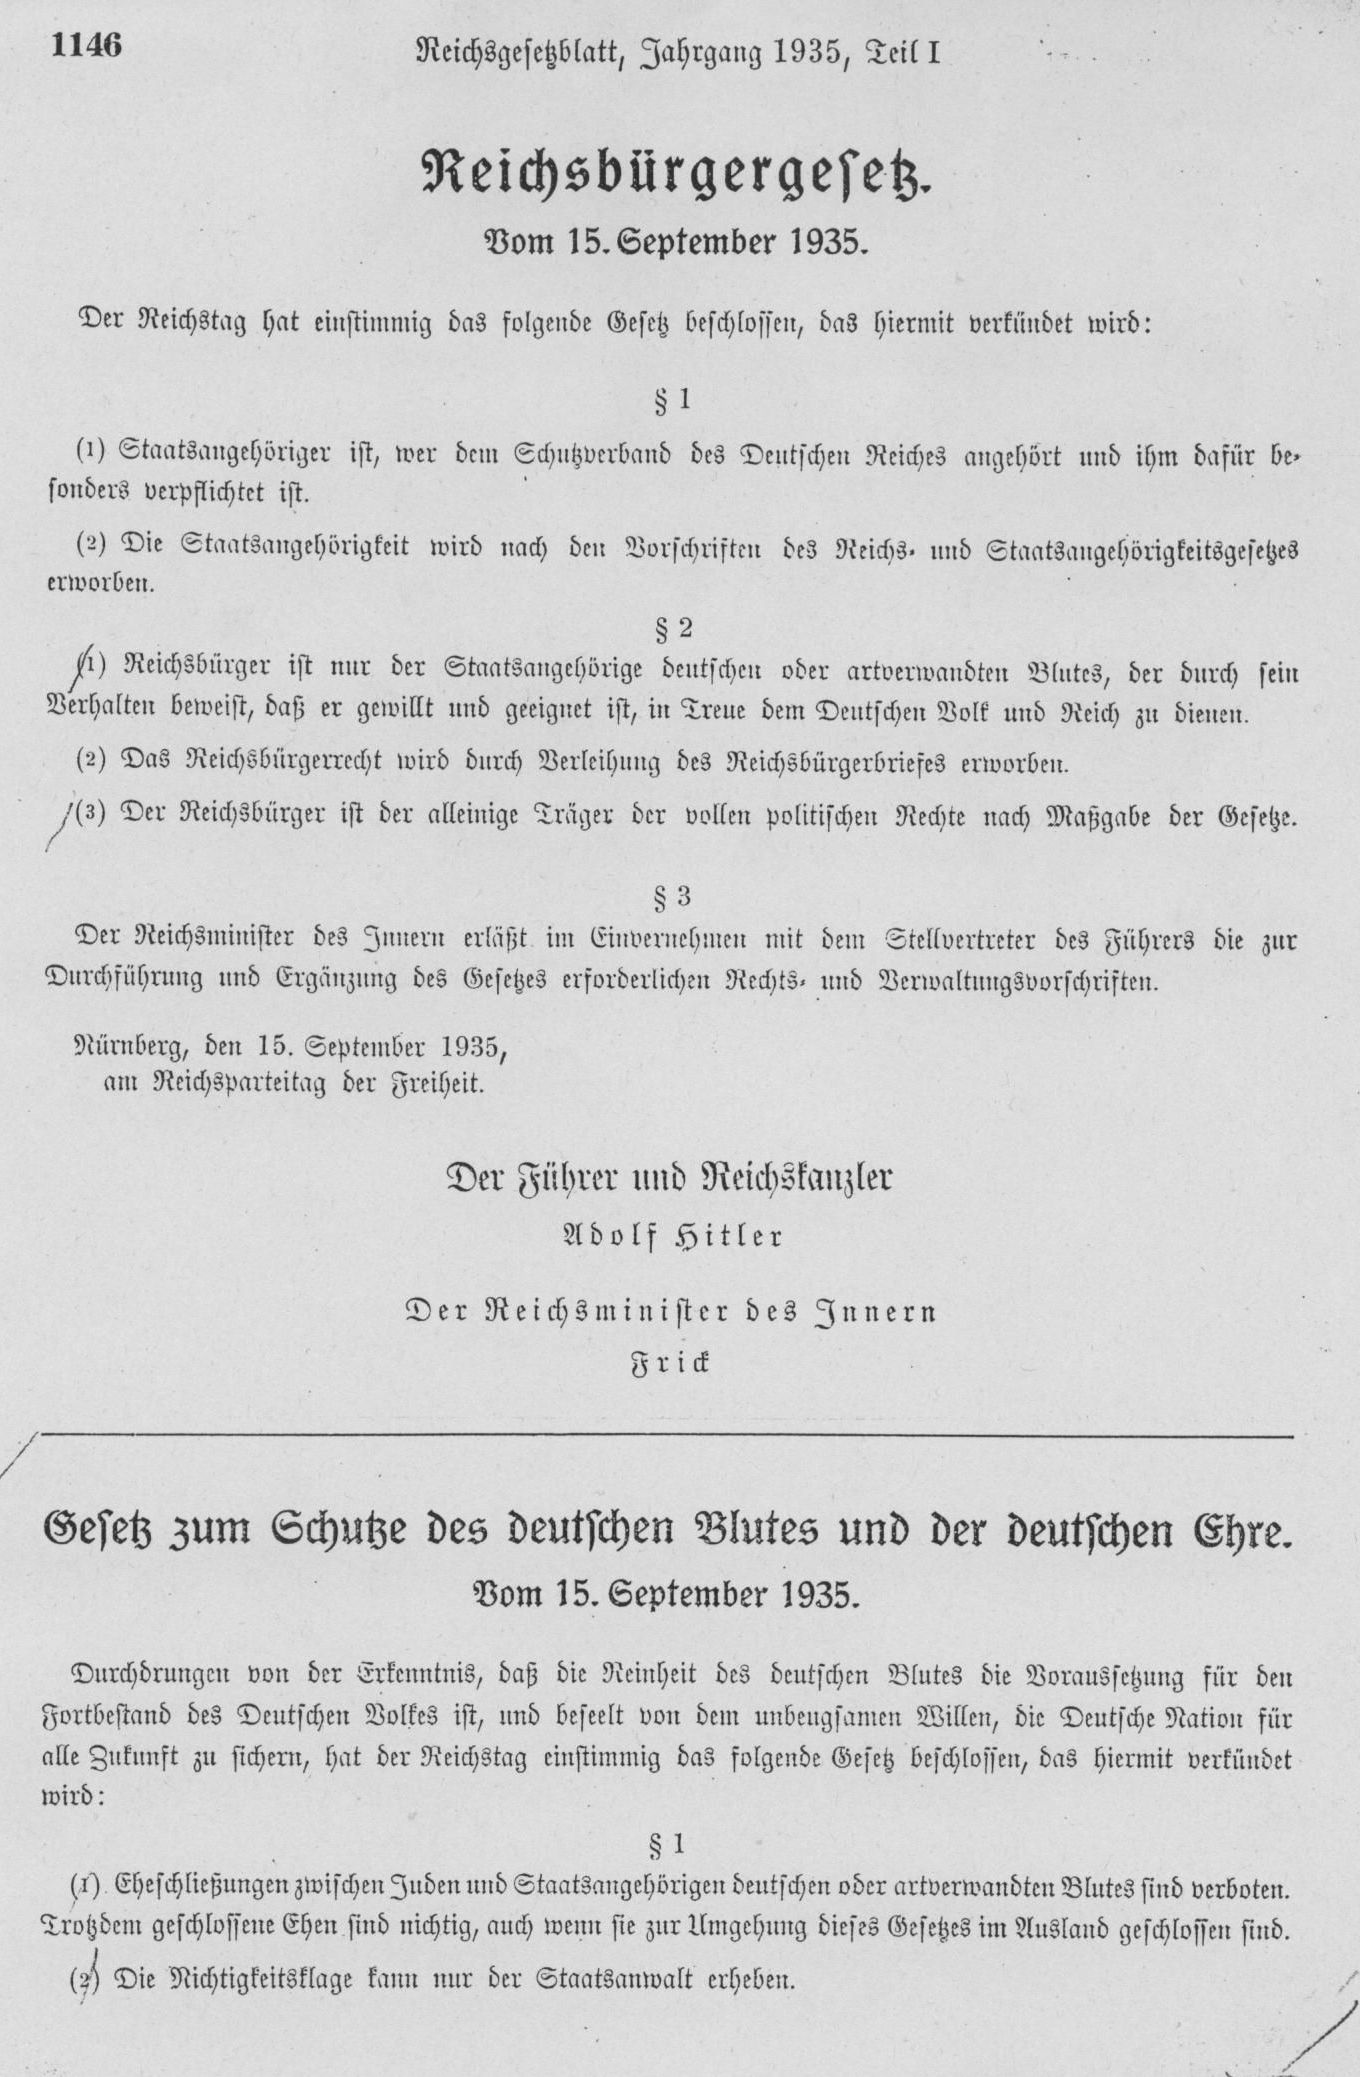 Reich Citizenship Law (Reichsbürgergesetz) for the Protection of German Blood and German Honor